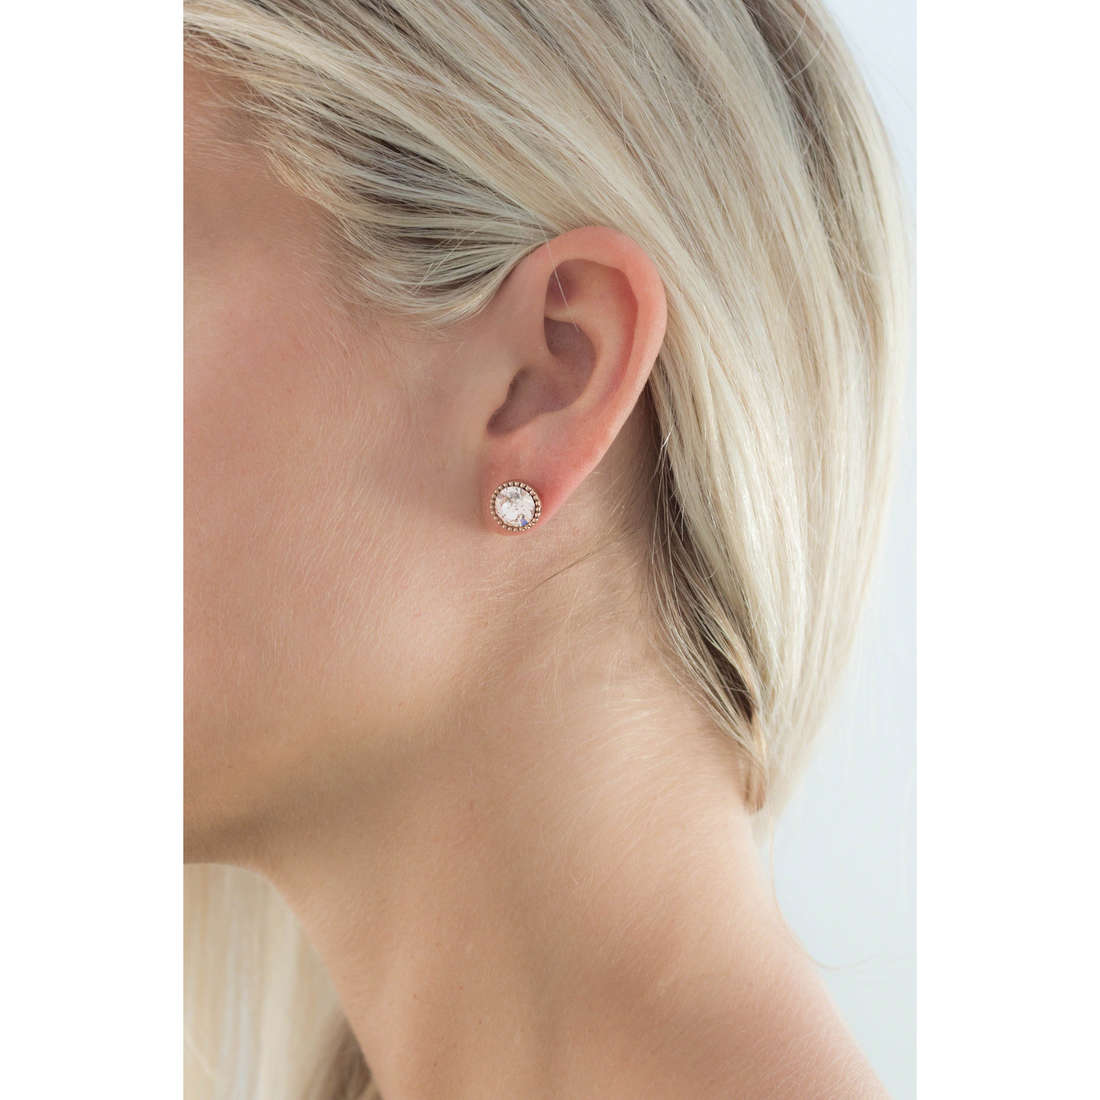 Brosway boucles d'oreille Riflessi femme BRF22 indosso